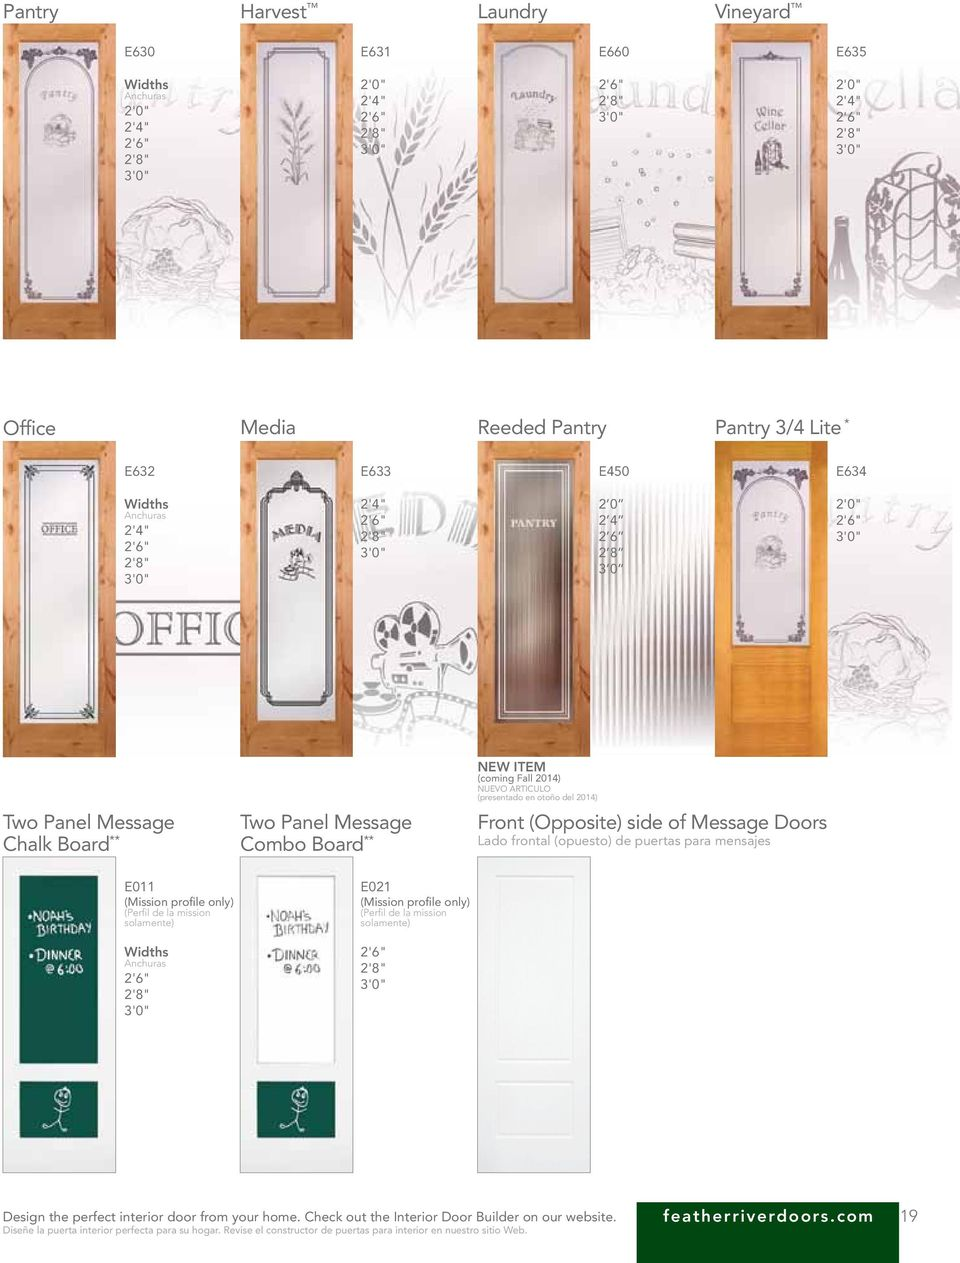 mensajes E011 (Mission profile only) (Perfil de la mission solamente) E021 (Mission profile only) (Perfil de la mission solamente) Design the perfect interior door from your home.